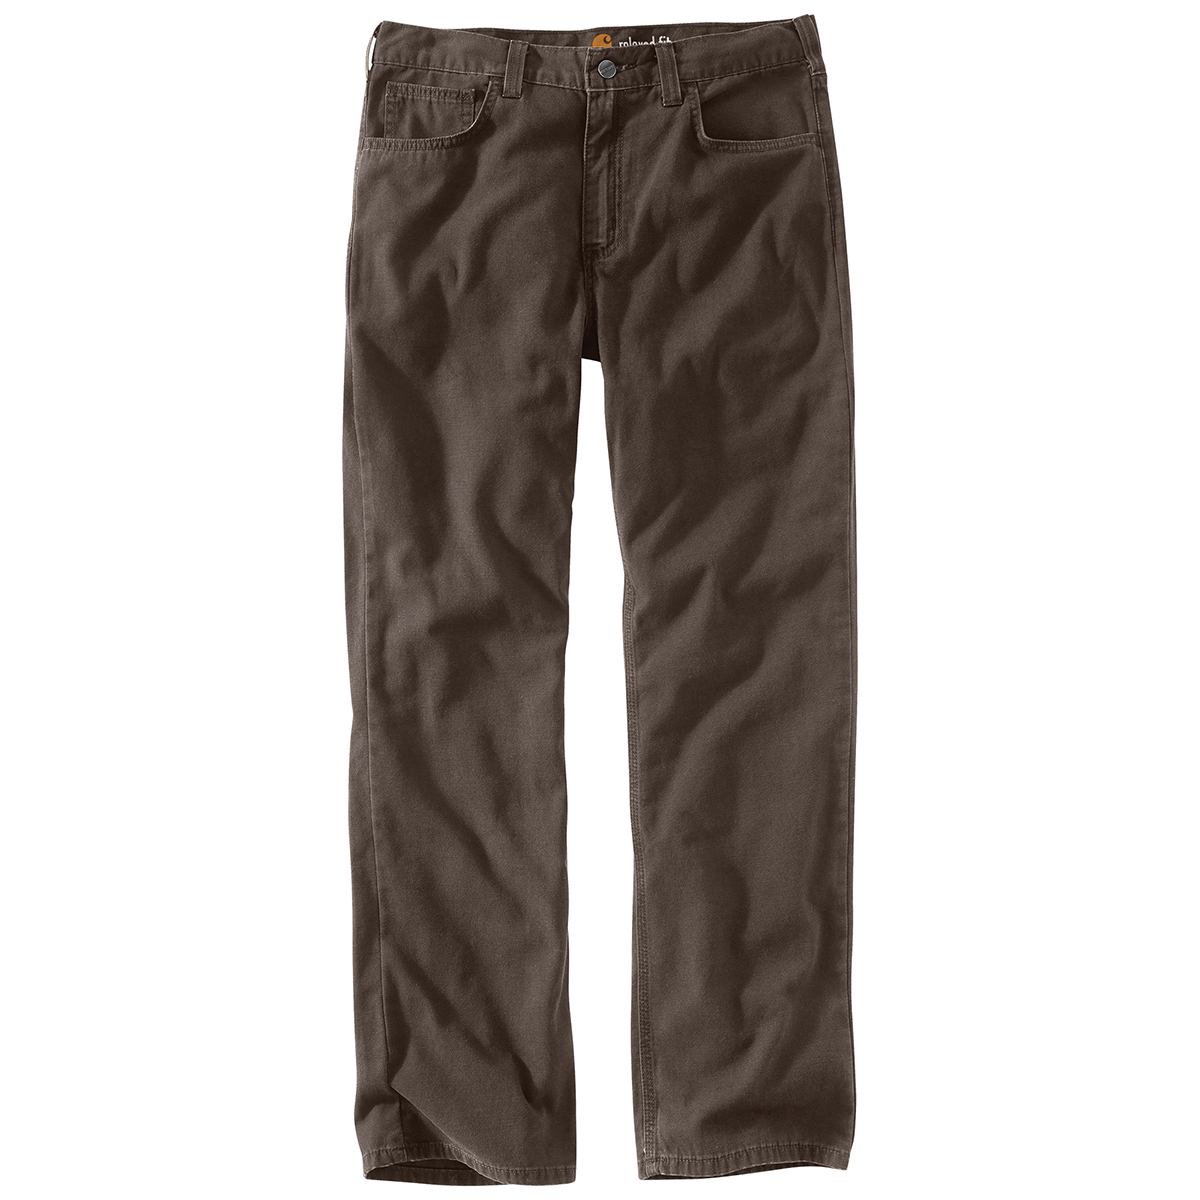 Carhartt Men's Flex® Rigby 5-Pocket Work Pant 102517